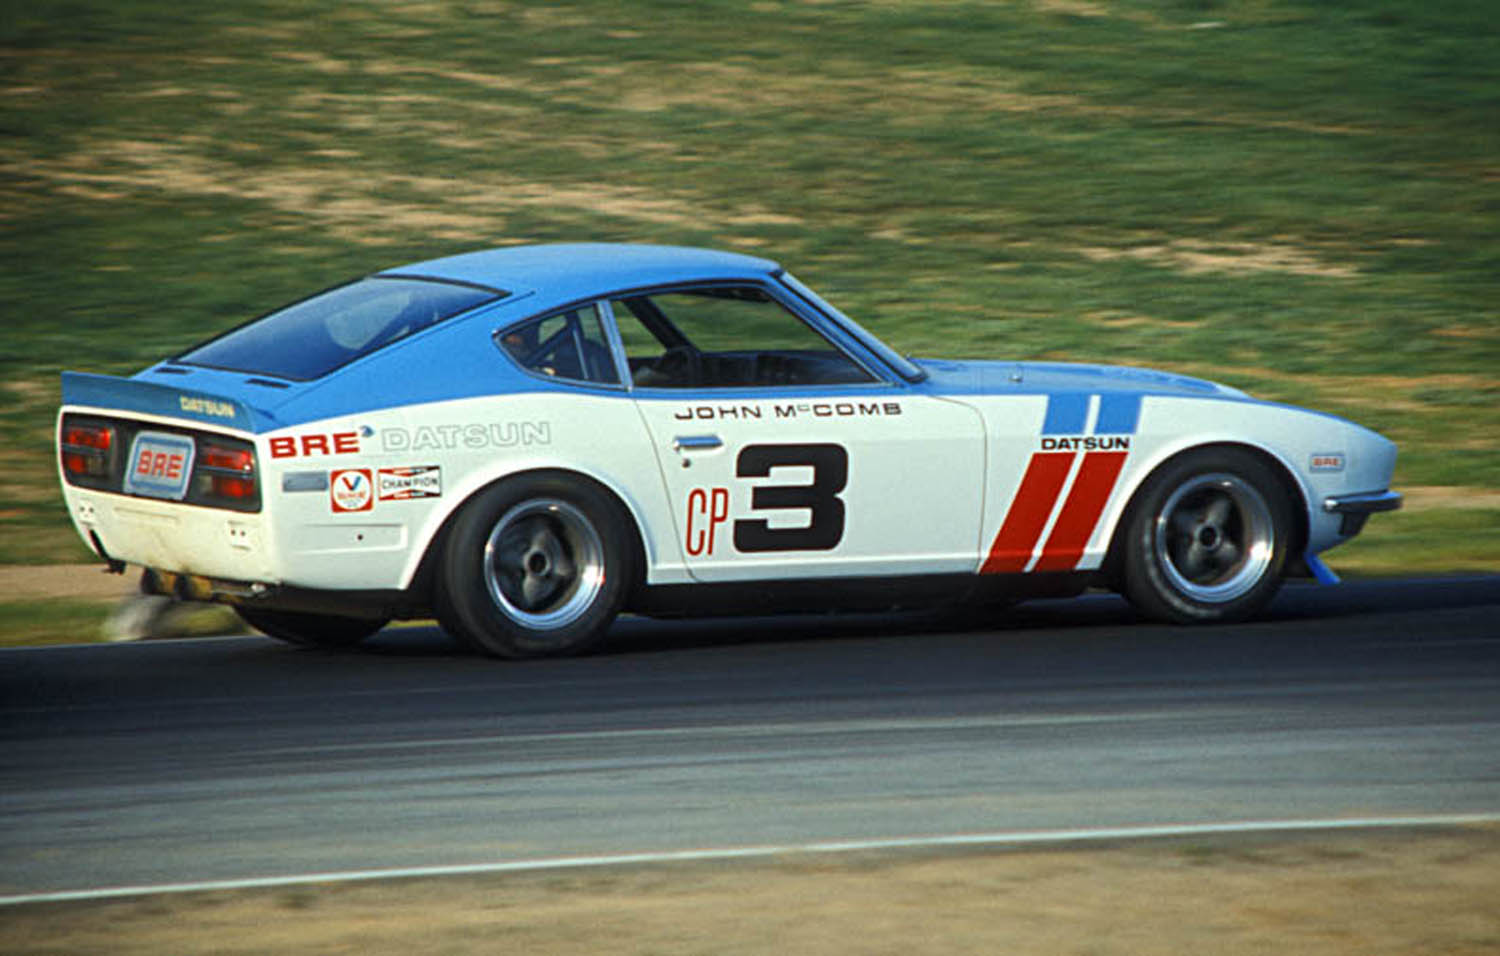 The Graphics On The Bre Datsuns Are Legendary And Often Copied As Nissan Has With Their New 50th Anniversary 370z That Uses The Bre Stripes And Contrasting Top And Side Colors How